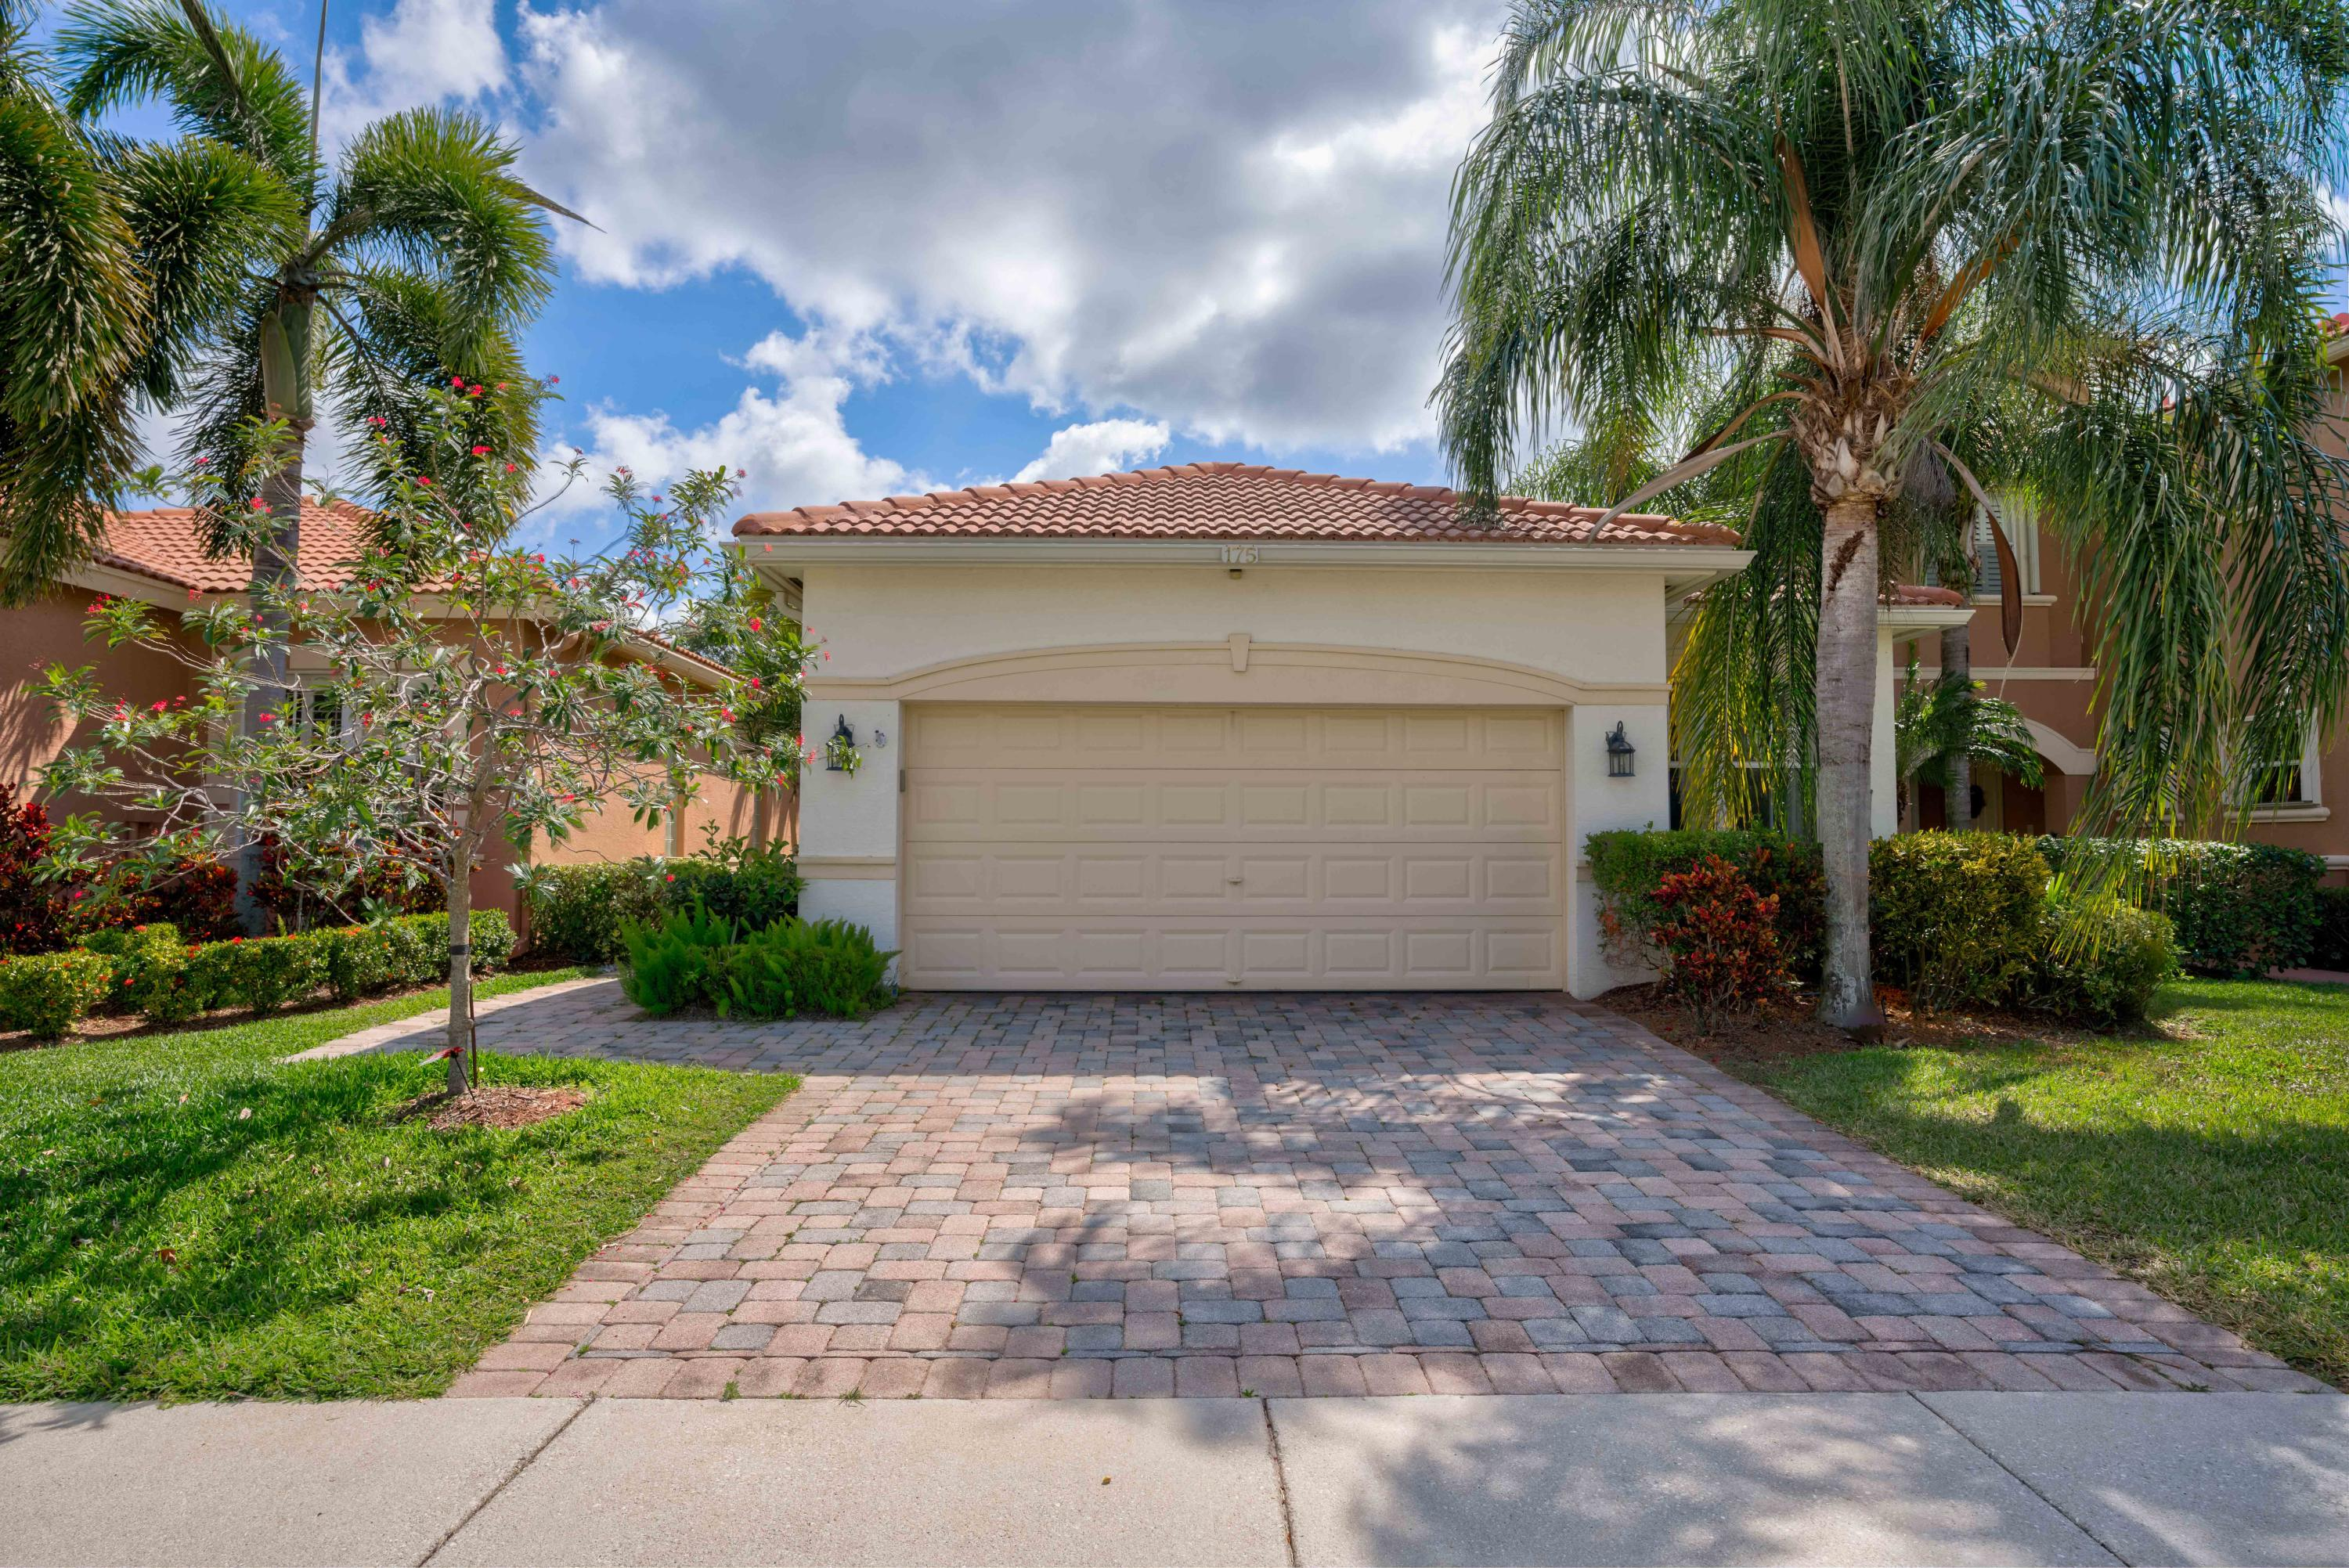 *Available 7/1/21* Mint Condition & Move in Ready Bella model w/ Lots of Upgrades. Offers One Level Living w/ Open Floorplan & High Ceilings w/ Large Great Room and Sliders out to Covered Lanai. Upgrades Include Porcelain Tile Flooring in all Bedrooms, Newer A/C w/ Nest Thermostat, Stainless Steel Appliances in Kitchen & Upgraded HE Washer & Dryer, 3rd BR has Murphy Bed / Storage system that will convey w/ home, Completely Repainted, Upgraded Light Fixtures Throughout & Upgraded Epoxy Floors in Garage. Mirabella is a 24/7 Guard Gated Community w/ no membership required & Resort Style Amenities!